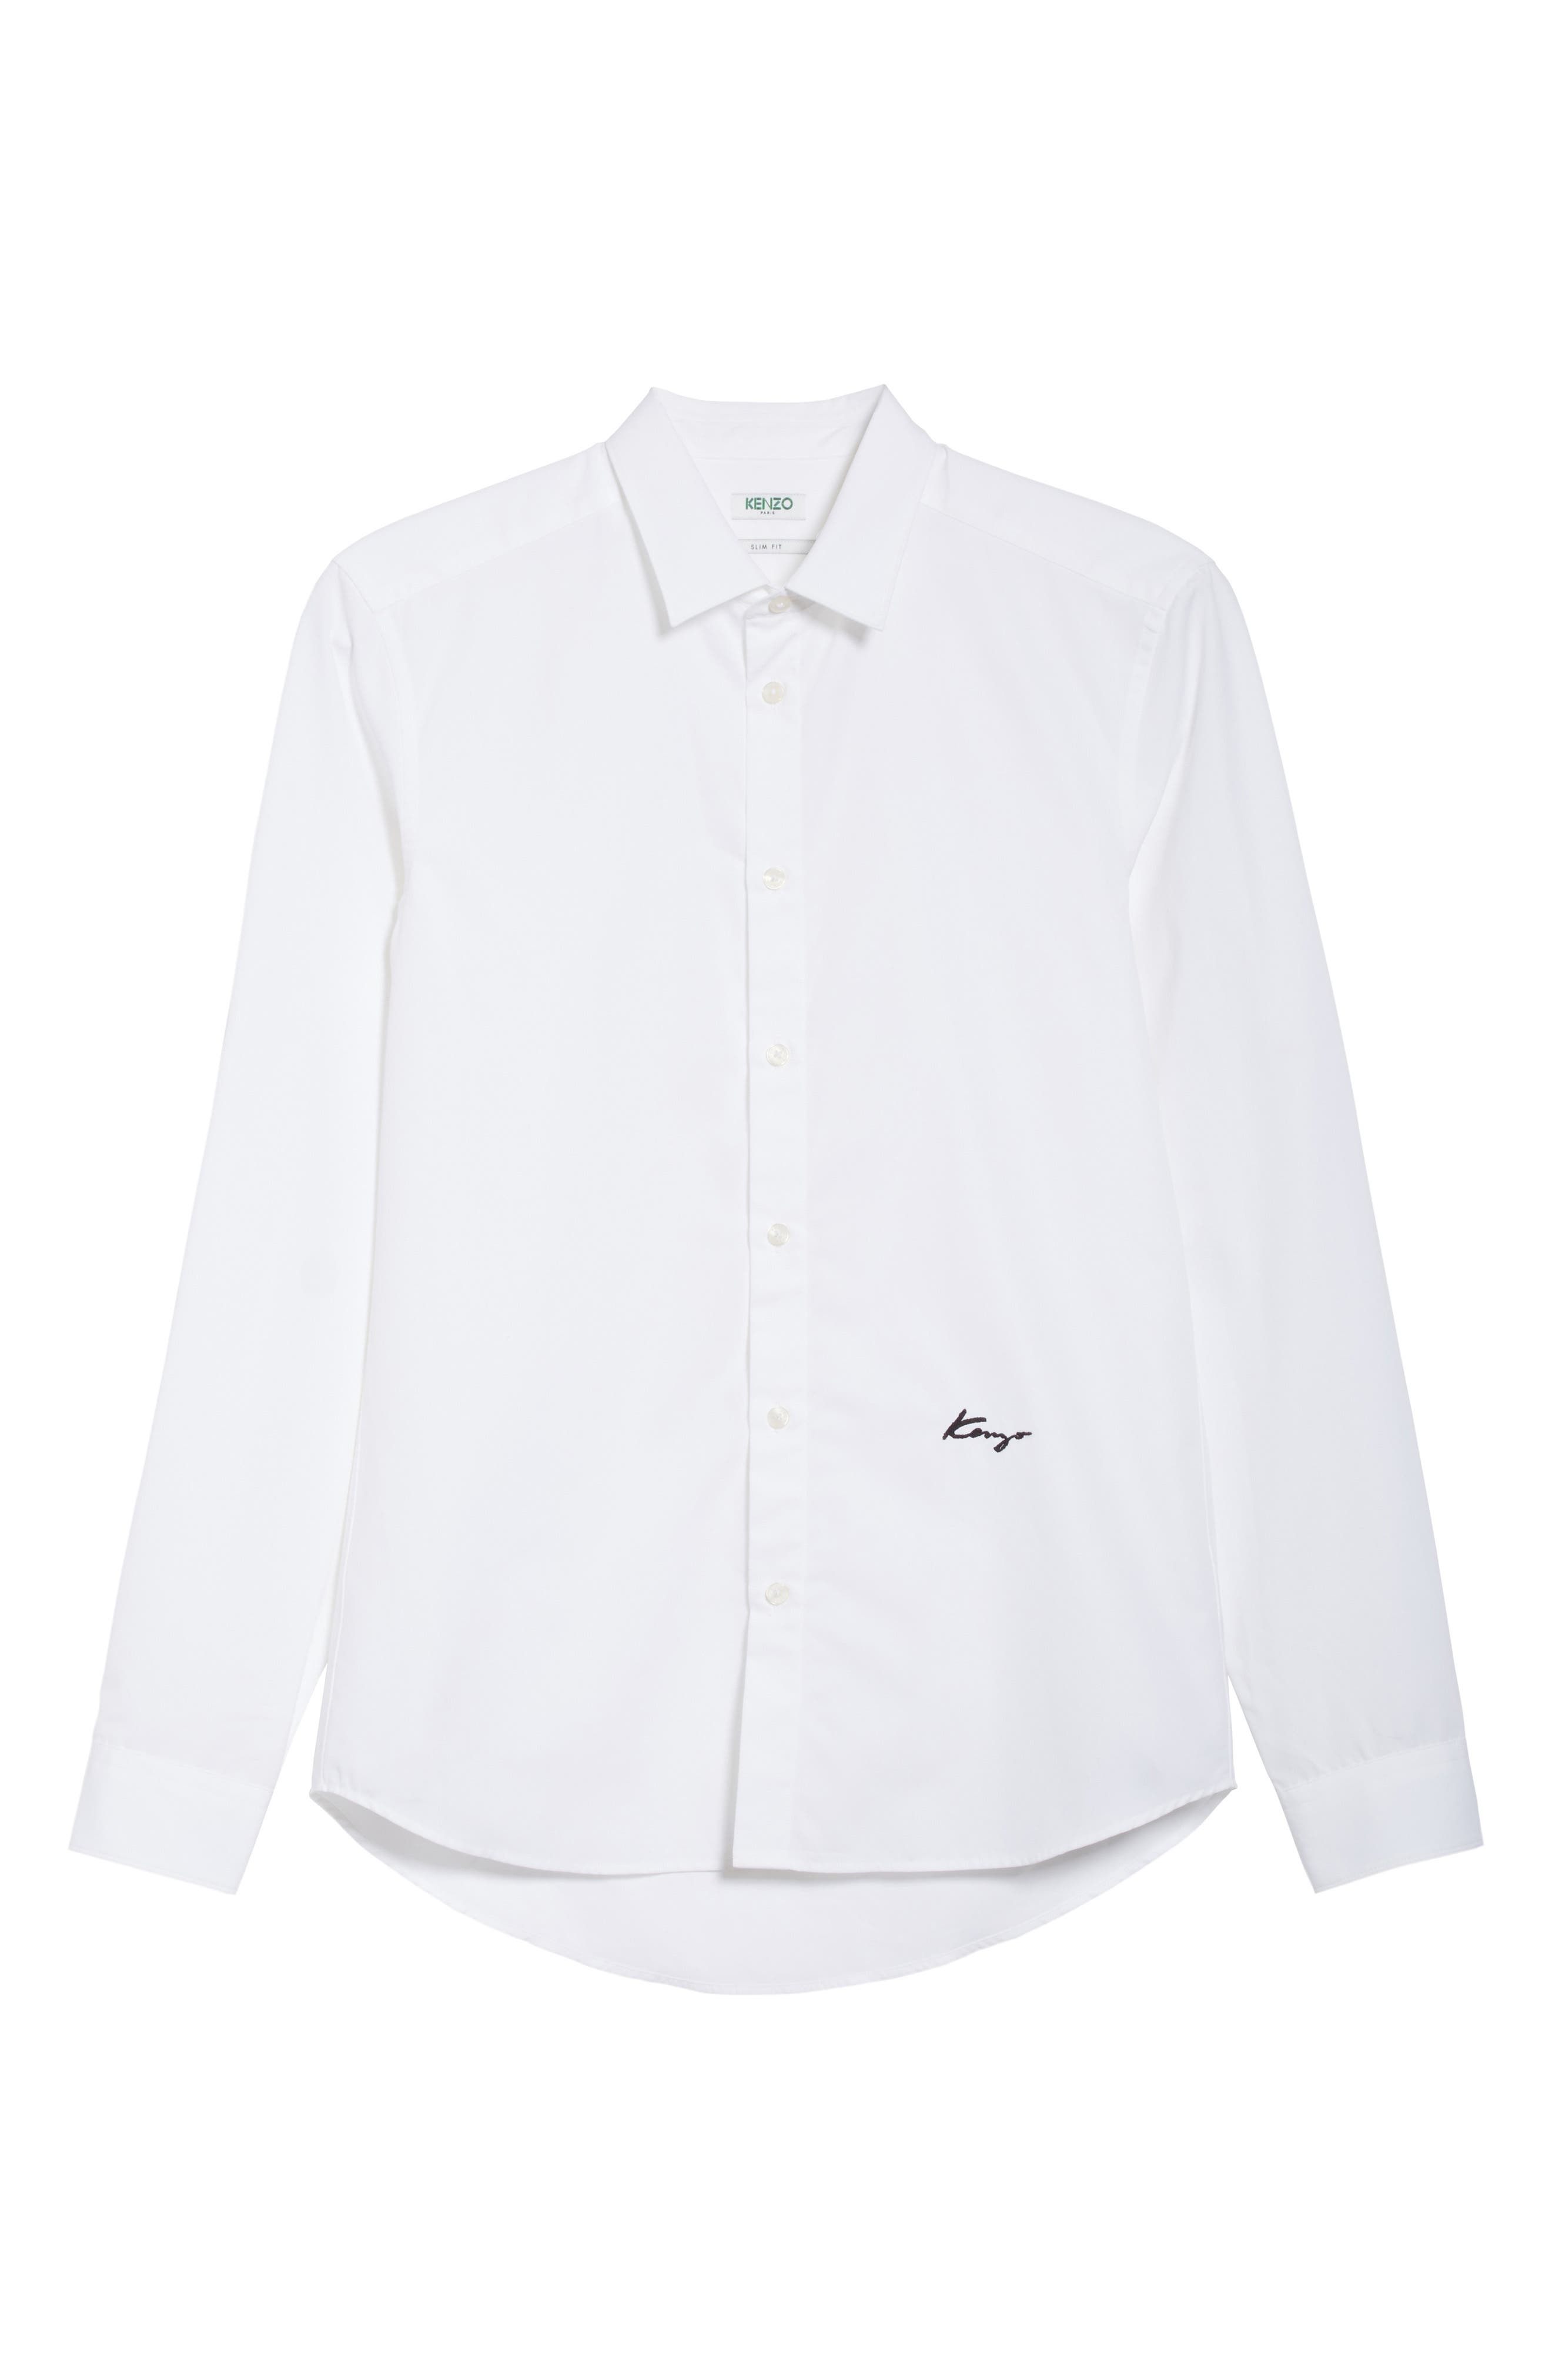 Slim Fit Embroidered Shirt,                             Alternate thumbnail 6, color,                             White